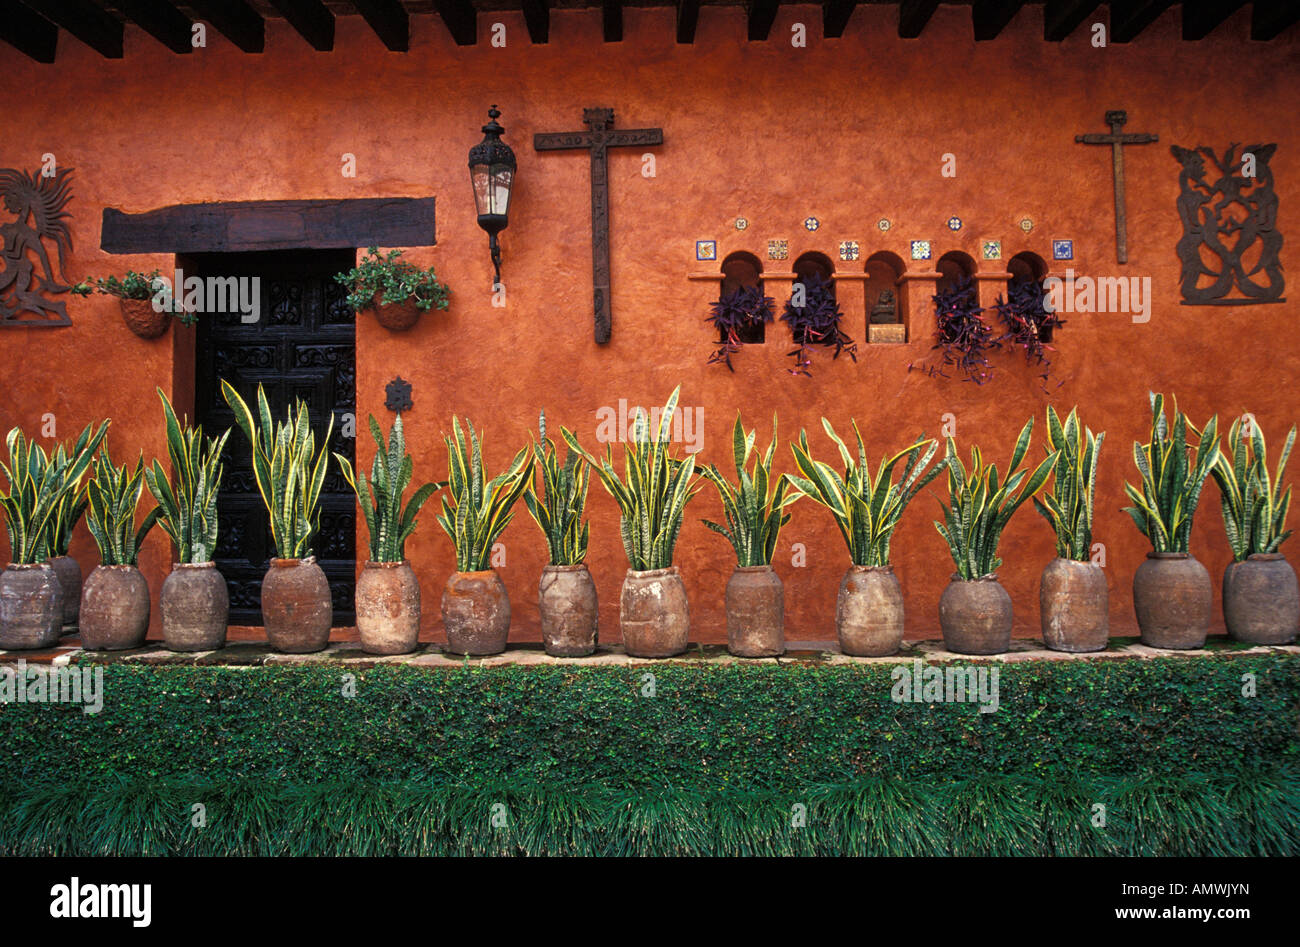 a-decorated-wall-in-the-courtyard-of-the